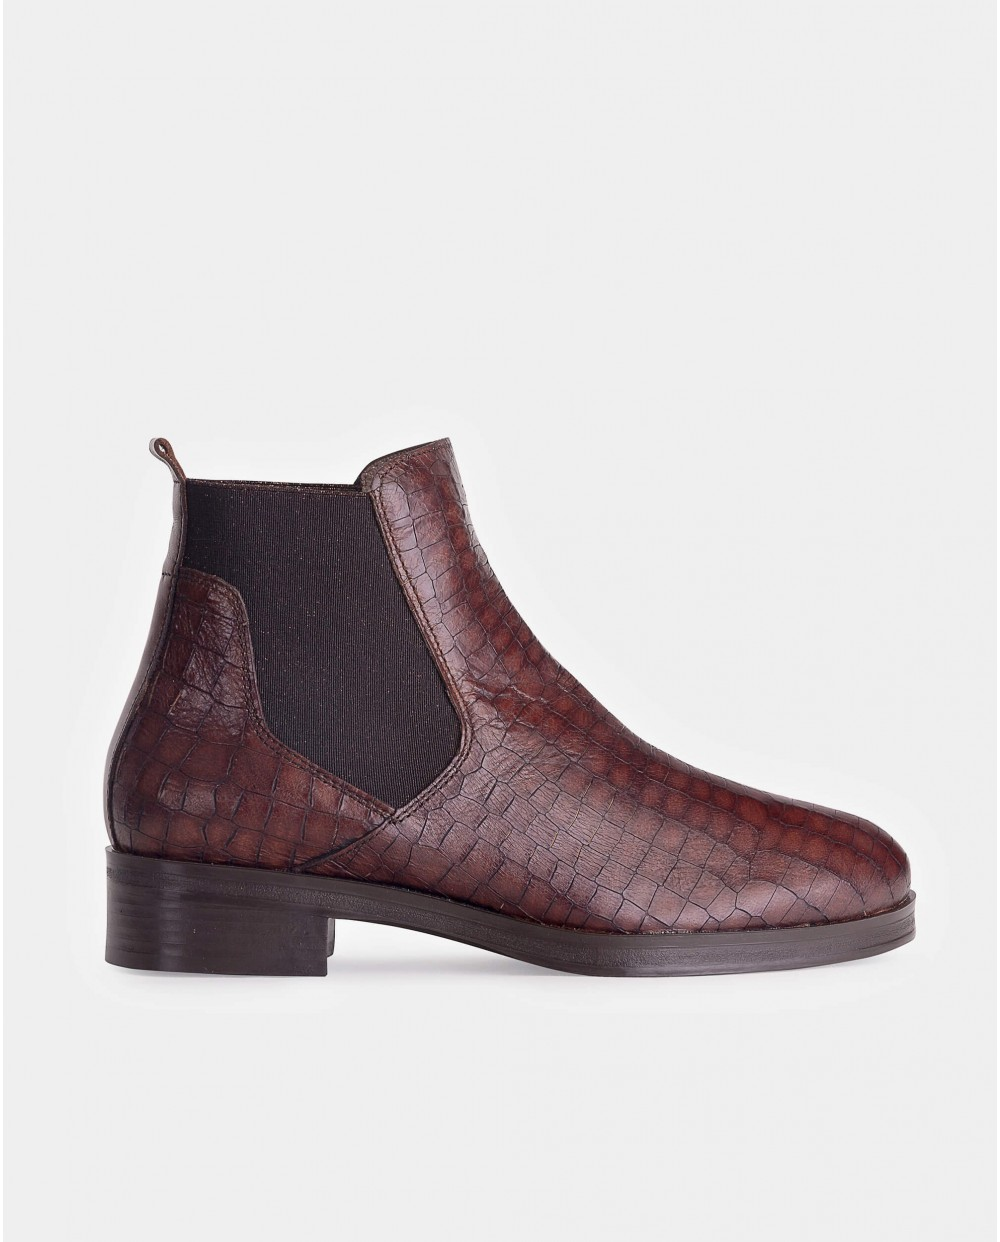 Wonders-Ankle Boots-Mock croc leather ankle boot.